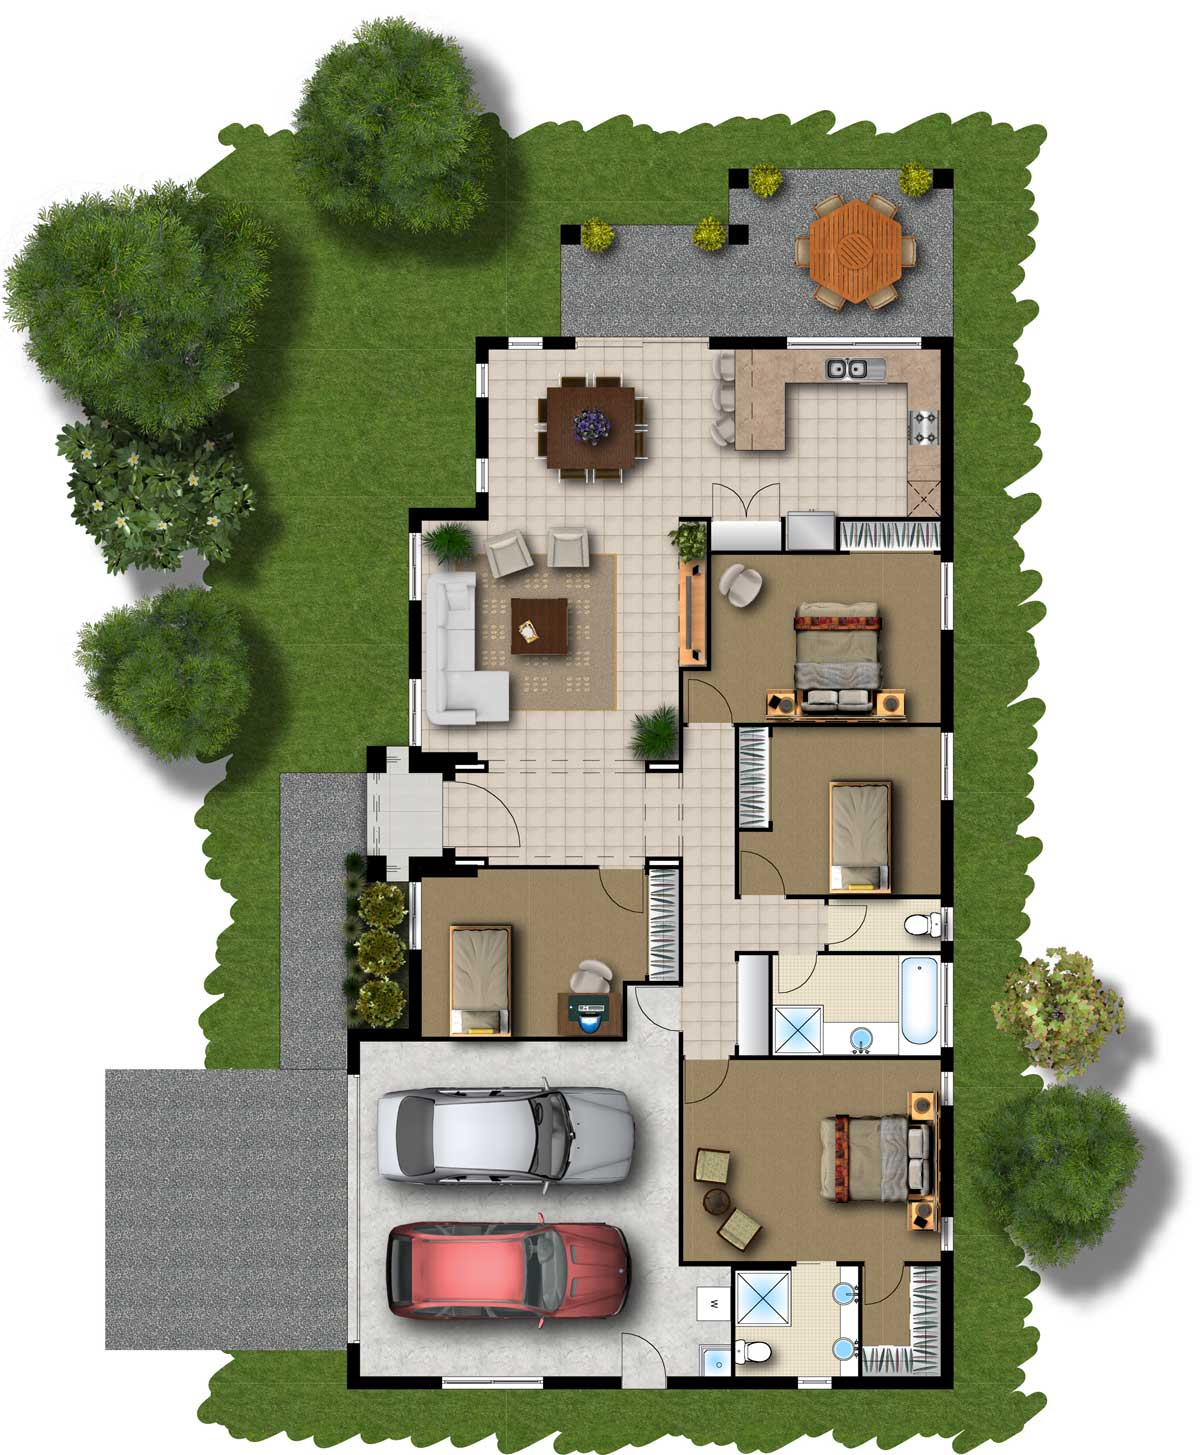 Floor plans designs for homes homesfeed for Home design layout ideas